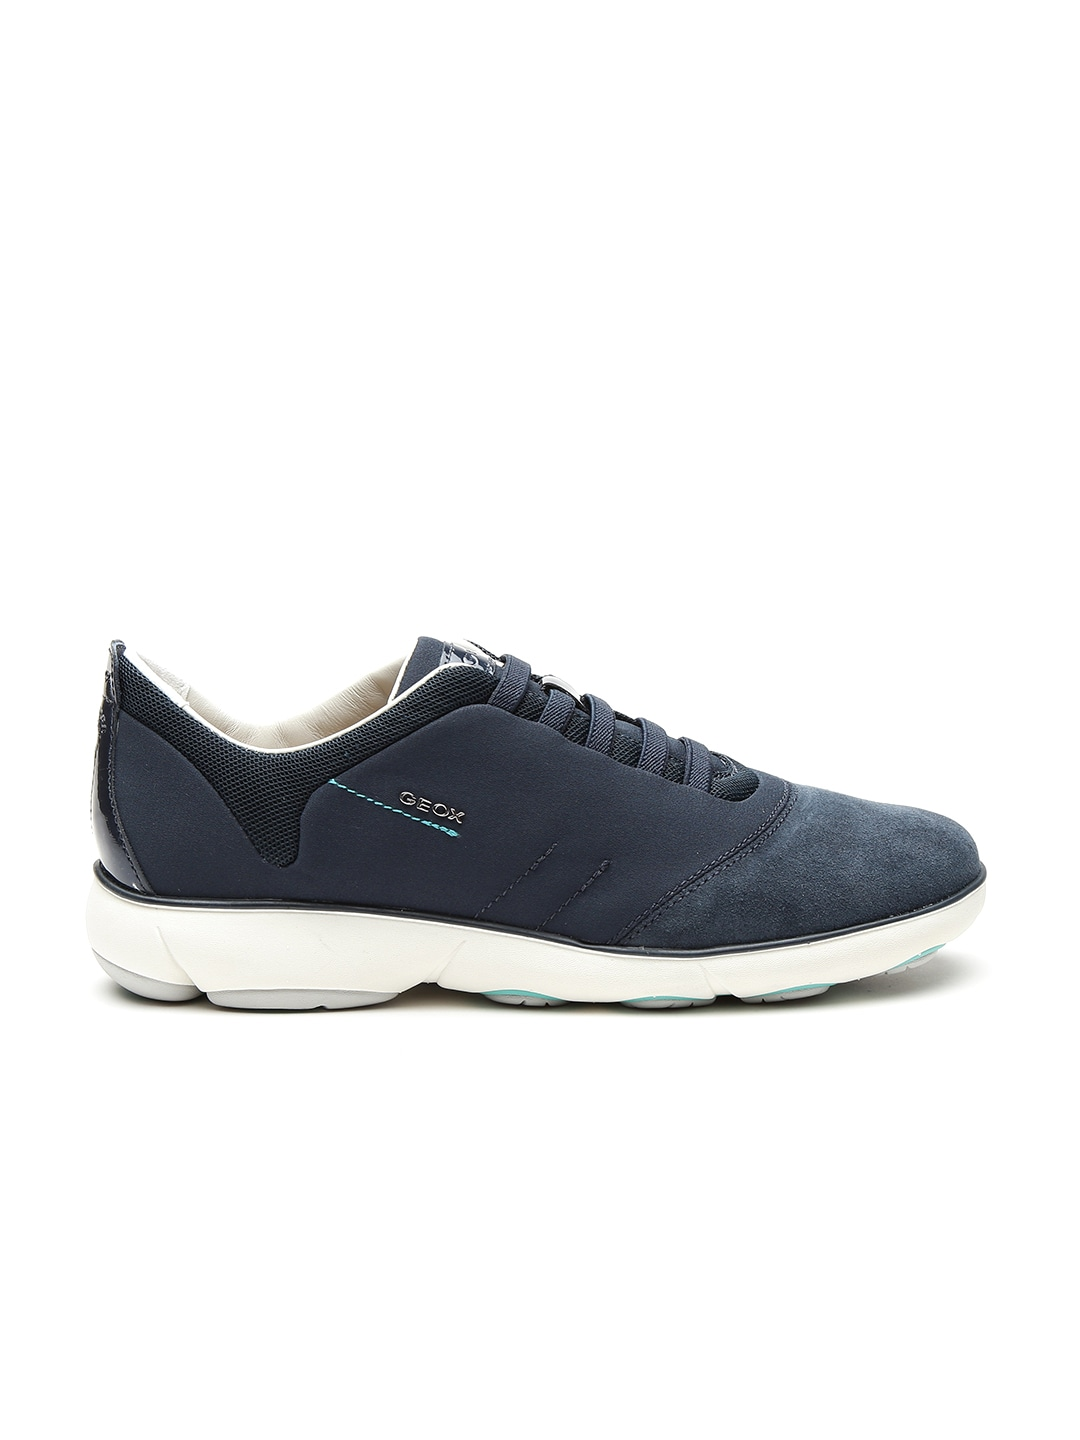 best loved deec4 bc154 GEOX Nebula Respira Women Navy Breathable Italian Patent Leather Casual  Shoes